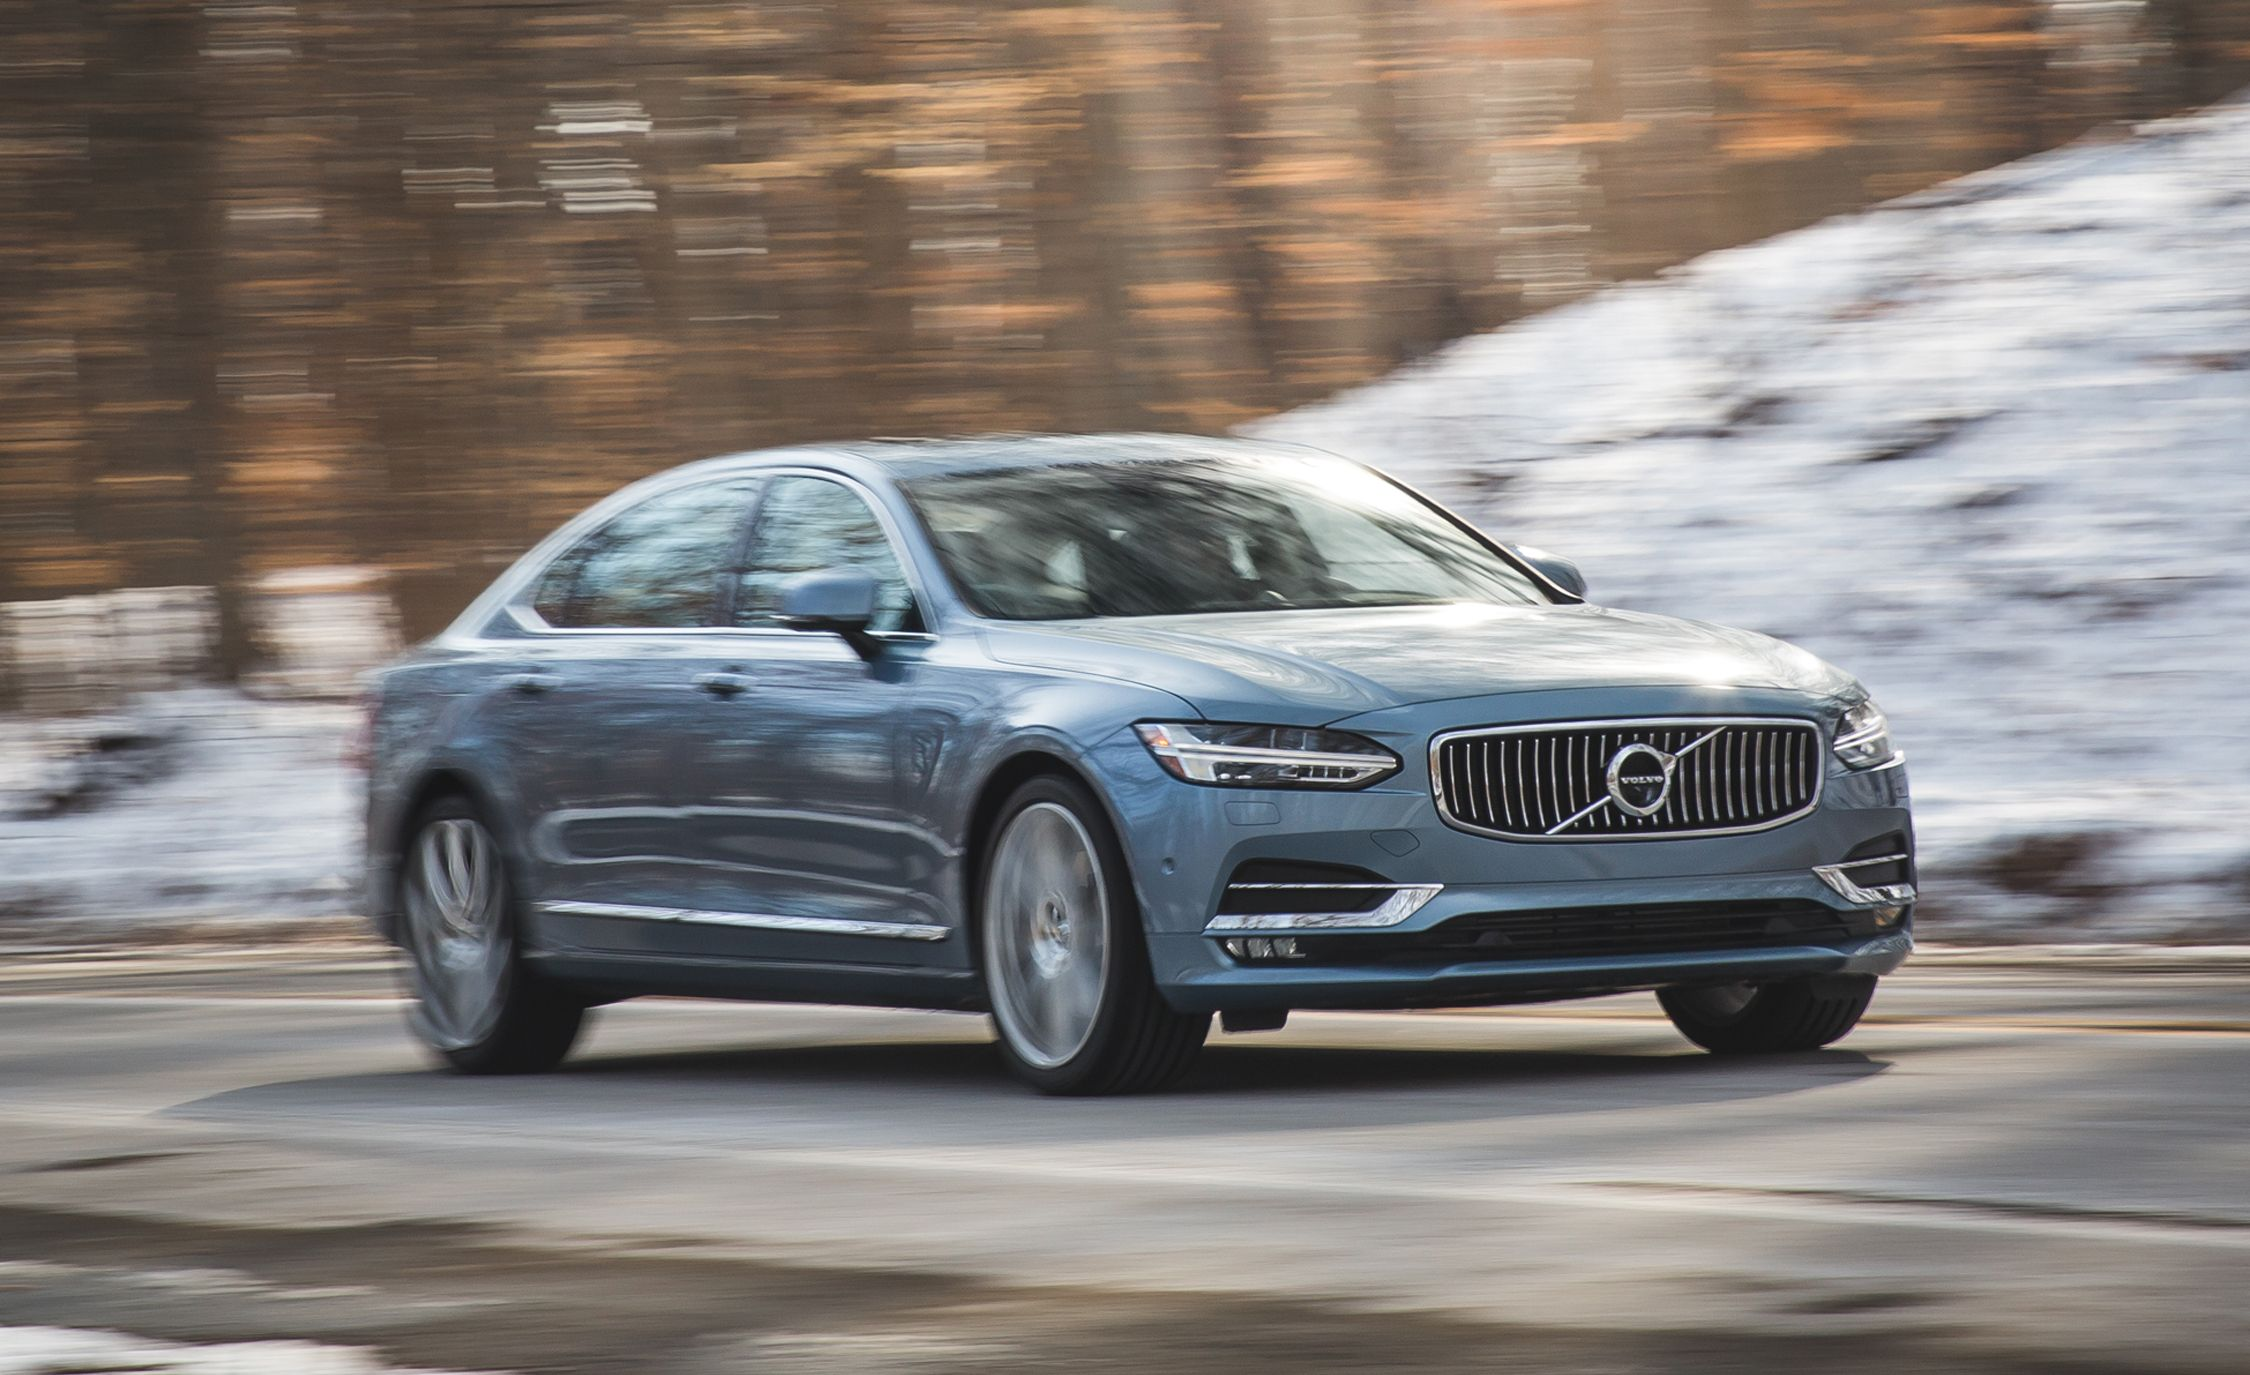 2019 Volvo S90 Reviews Volvo S90 Price Photos And Specs Car